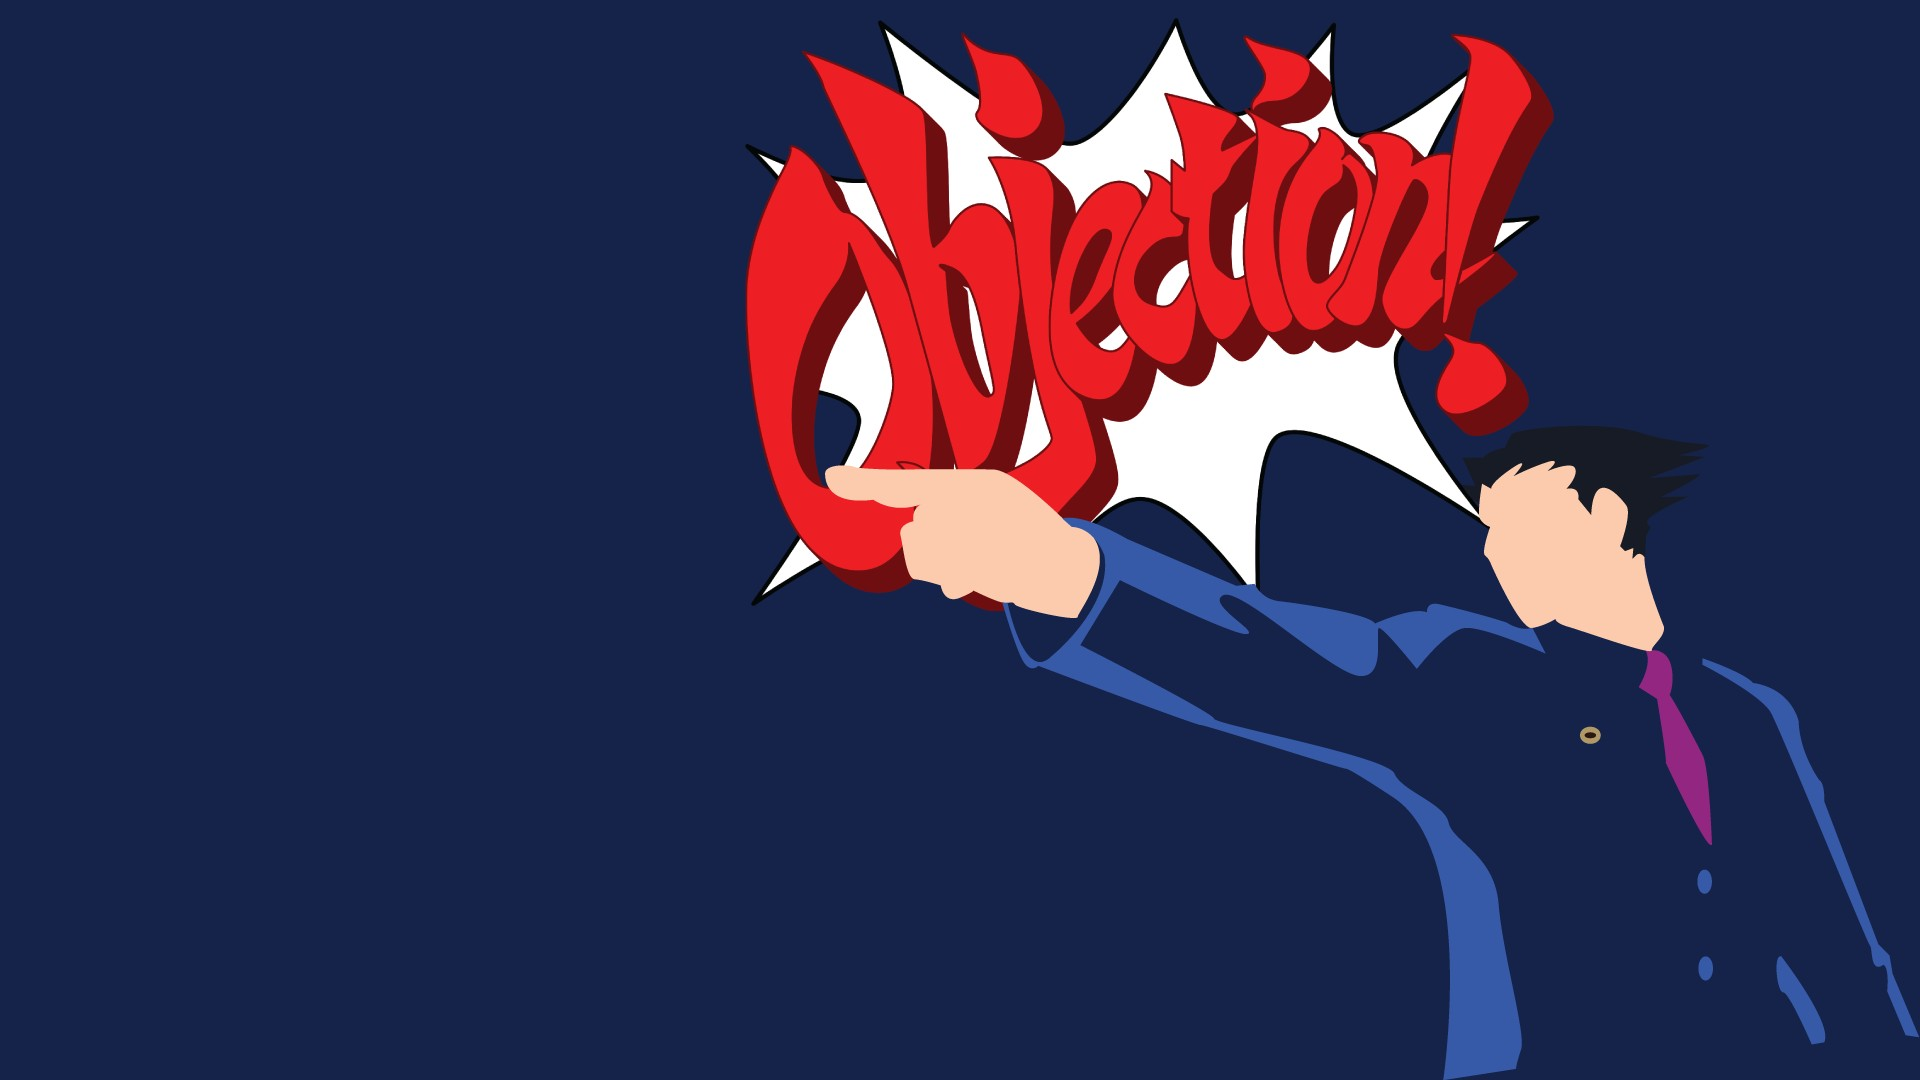 Phoenix Wright Wallpaper Download Free Awesome Backgrounds For